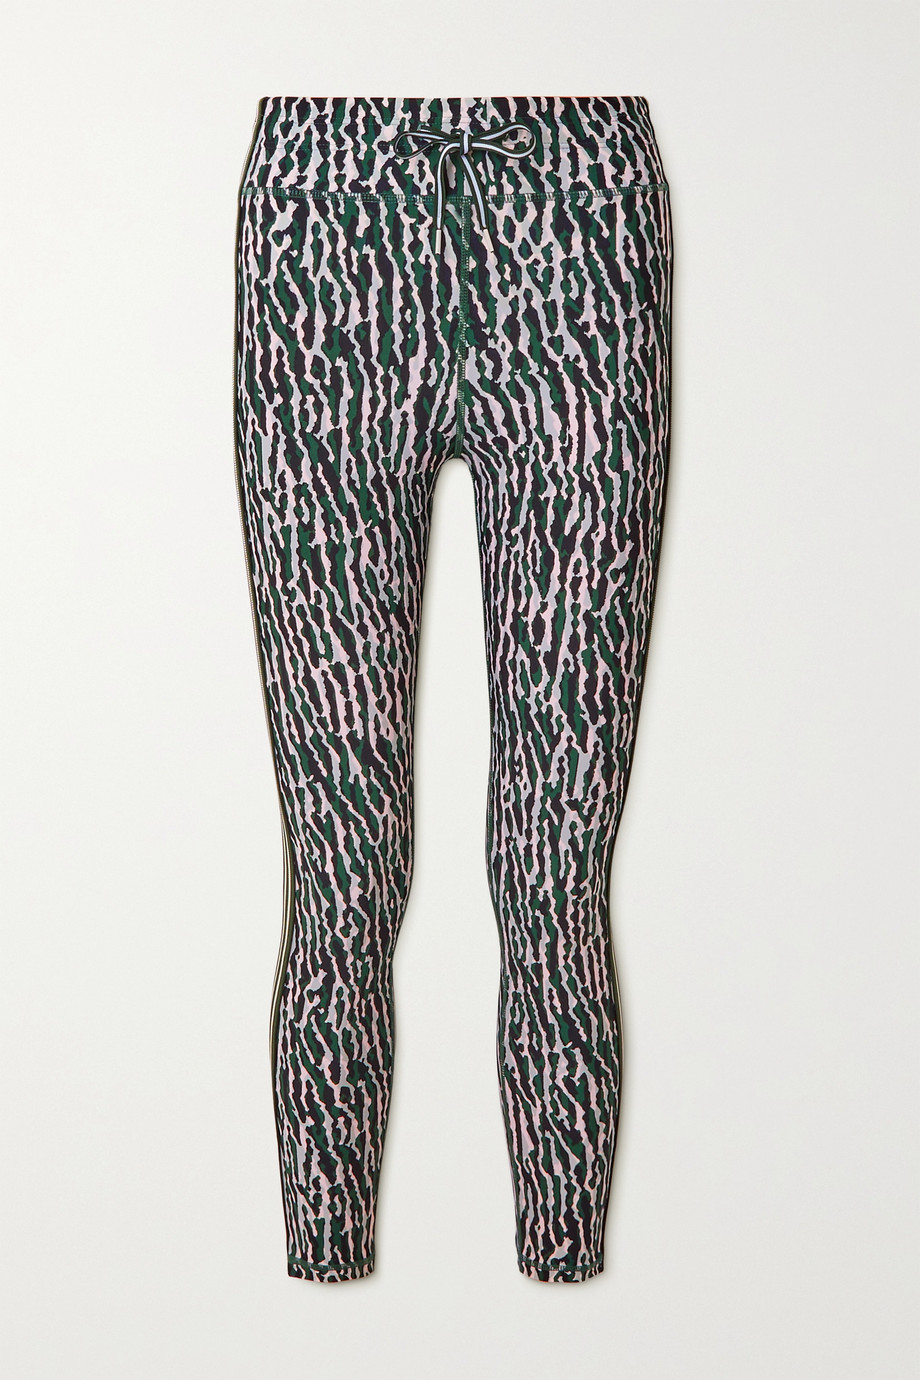 The Upside Camouflage-print stretch leggings